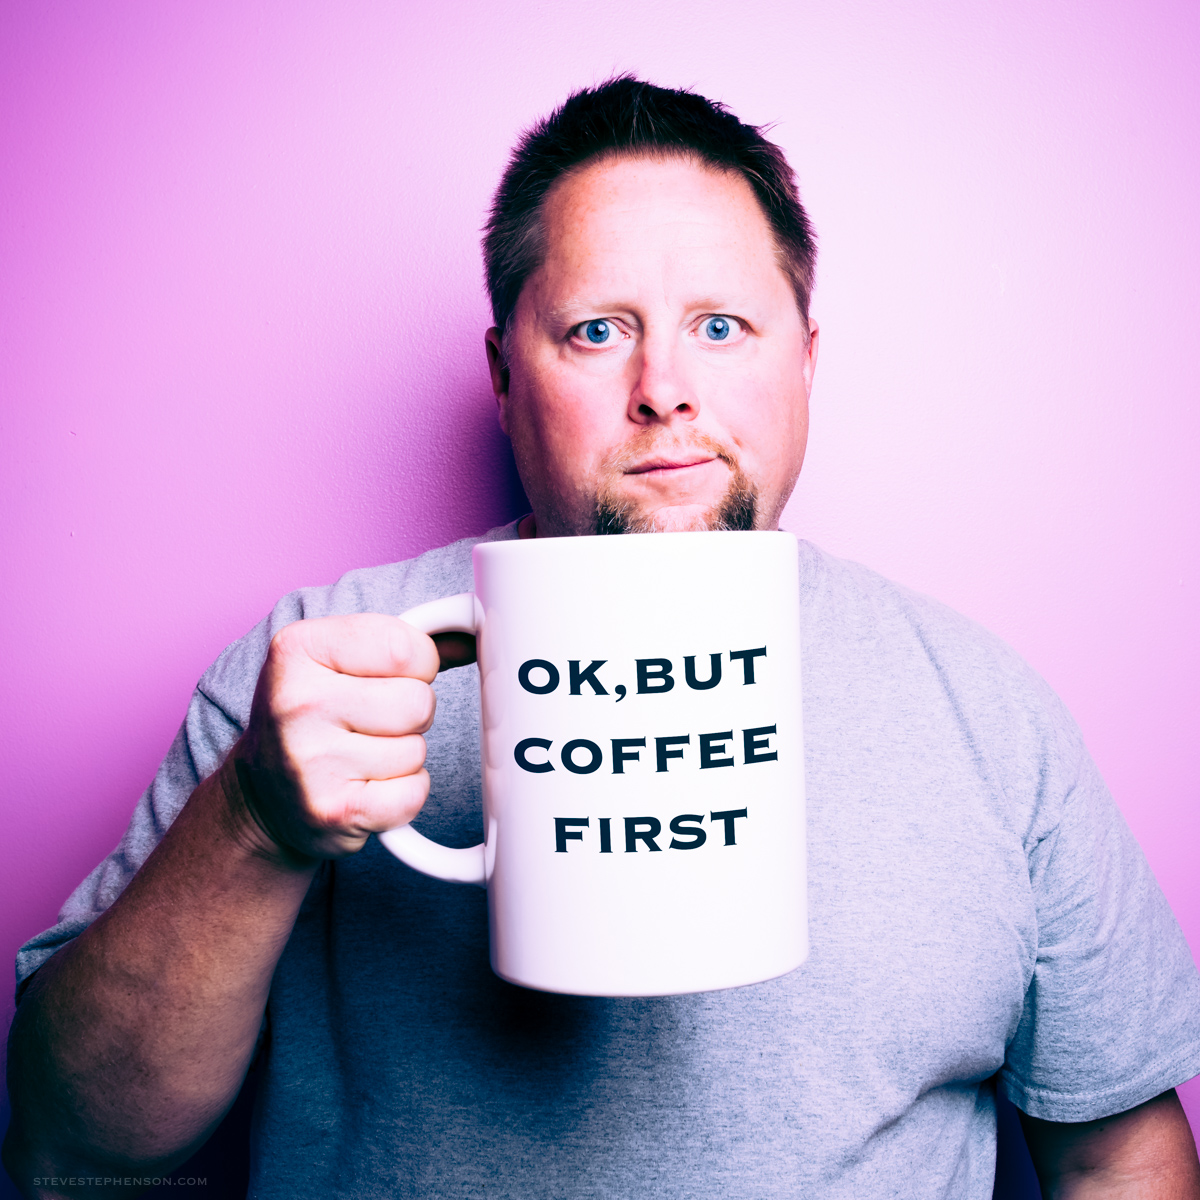 Ok,BUT COFFEE FIRST